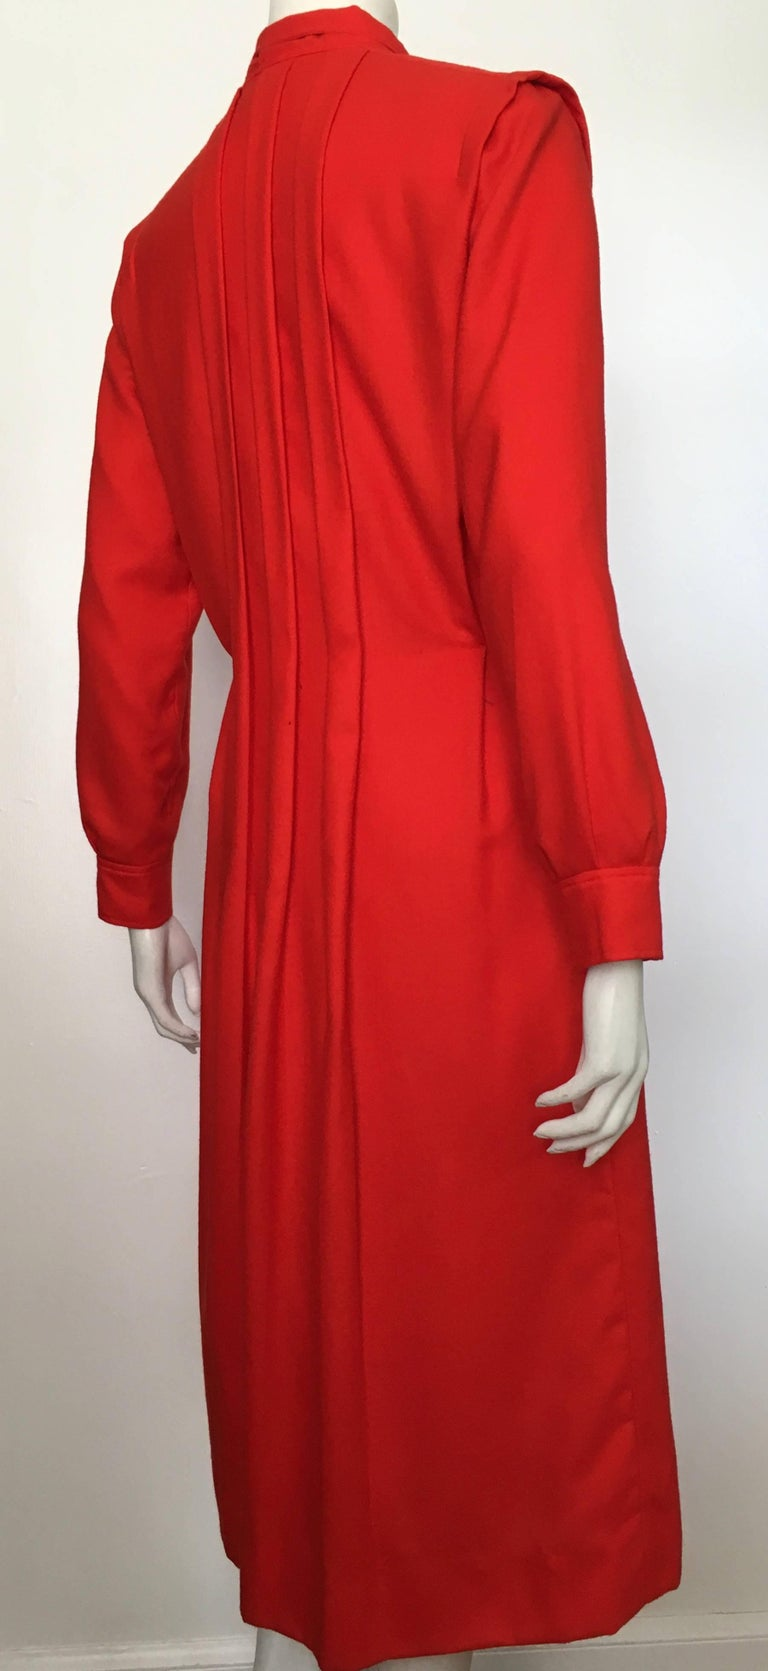 Courreges Red Wool Long Sleeve Dress with Pockets, 1980s  For Sale 10